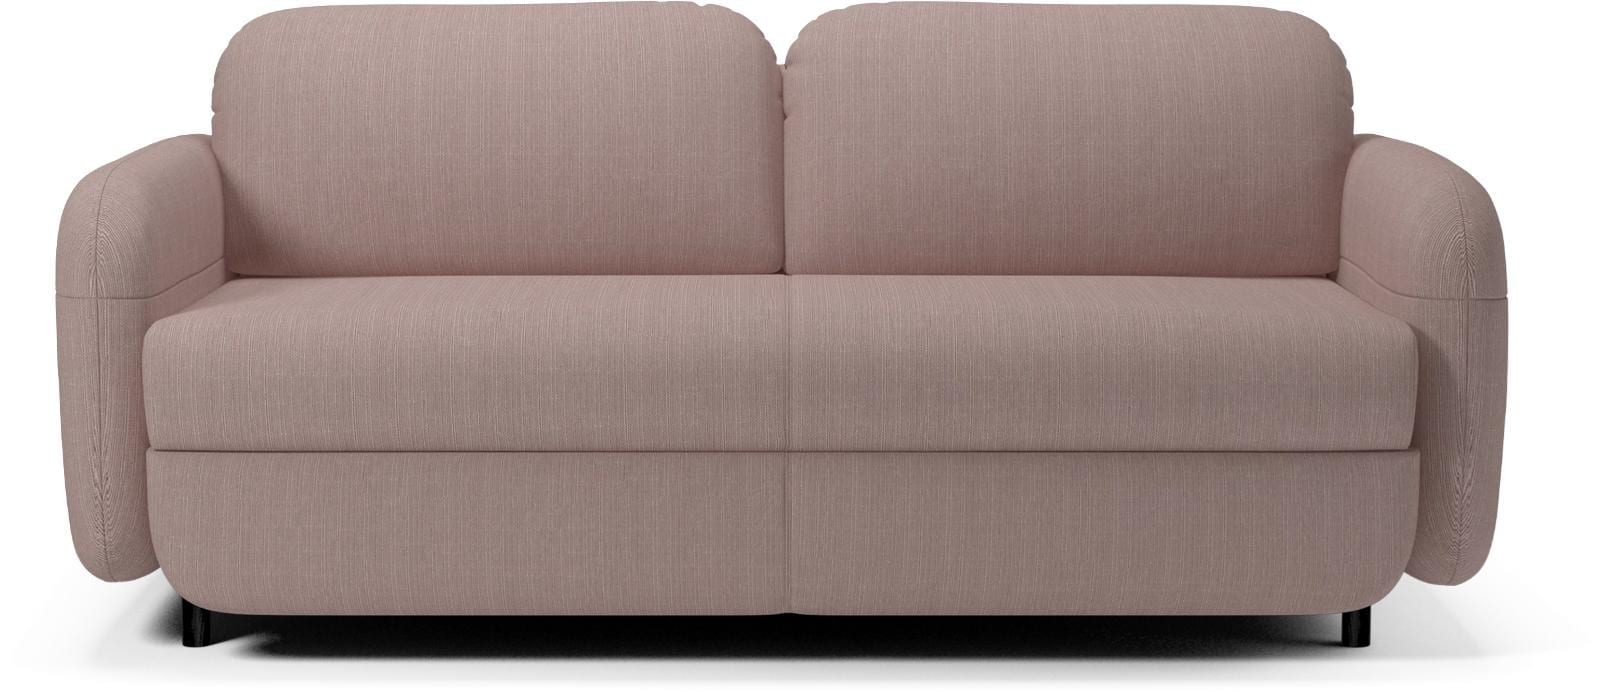 Sensational Fluffy 2 Seater Sofa Bed Squirreltailoven Fun Painted Chair Ideas Images Squirreltailovenorg